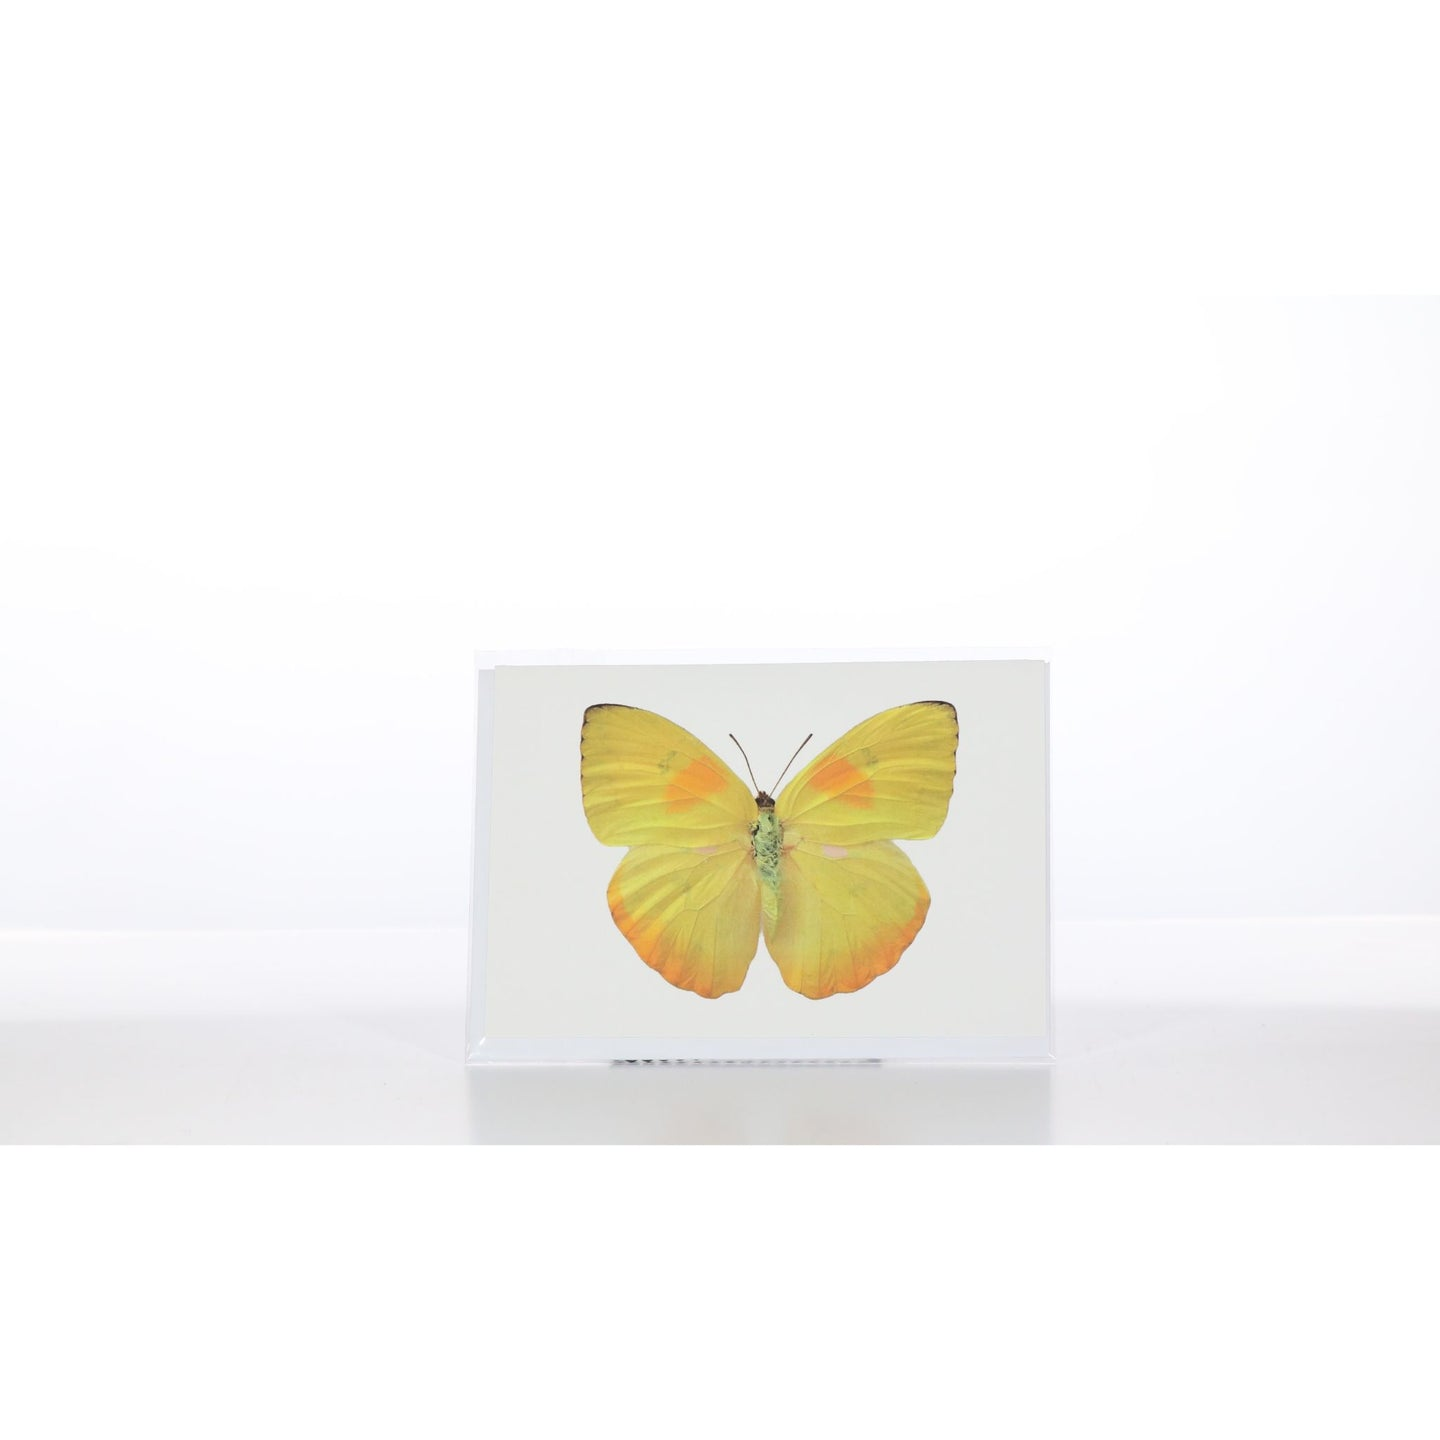 Greeting Card GC6 - Insecta Etcetera